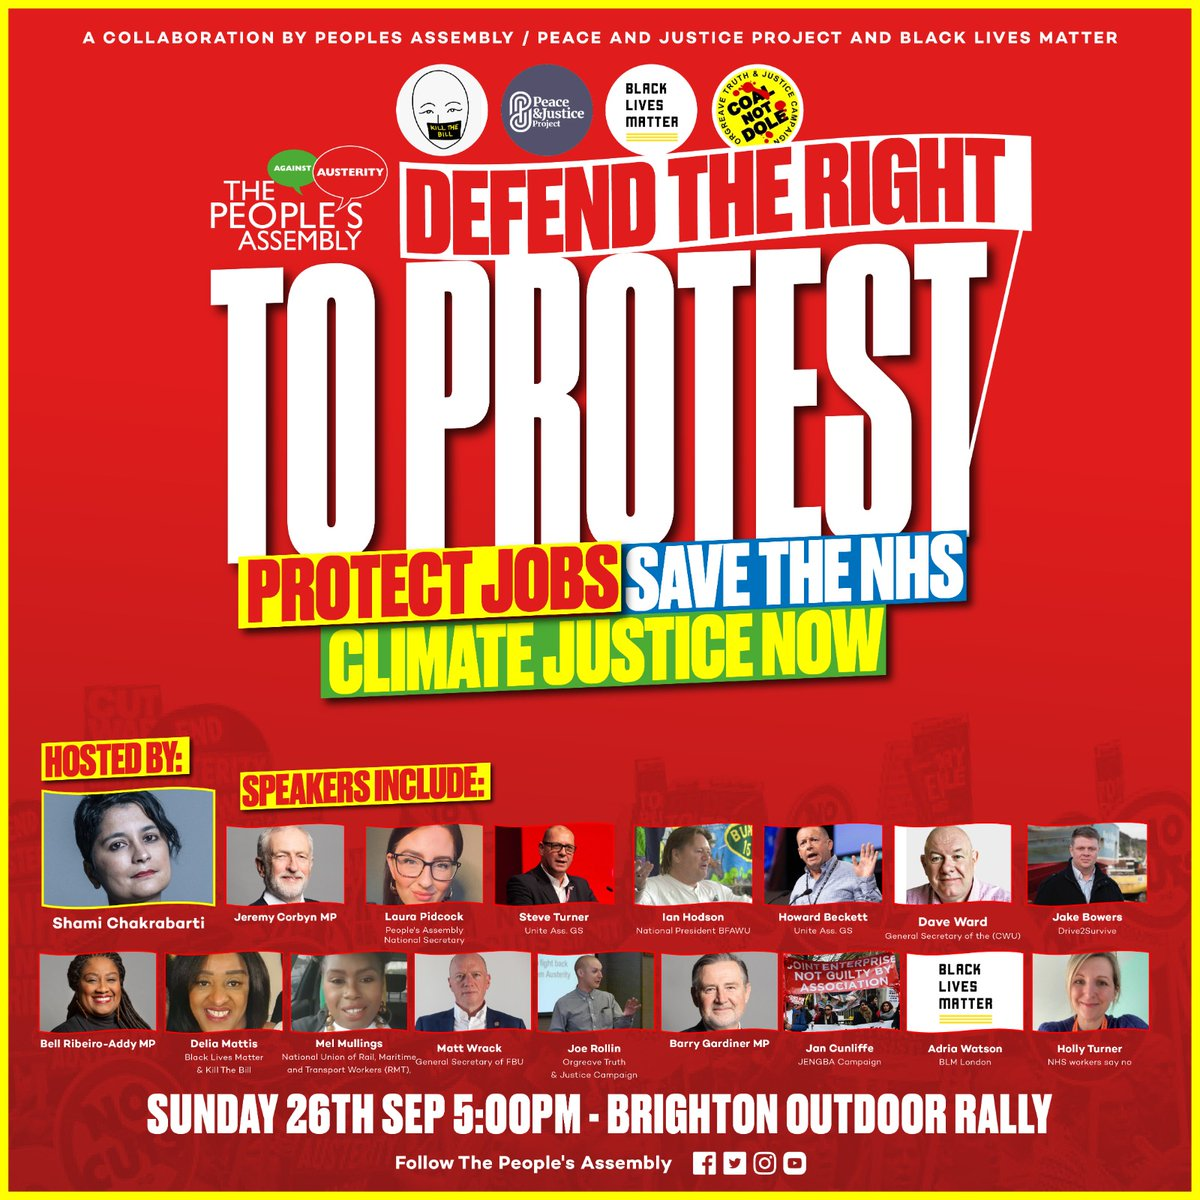 I'm excited to join people, campaigners and organisations from across our movement in Brighton on Sunday standing up to defend the right to protest so we can protect jobs, save the NHS and deliver climate justice.